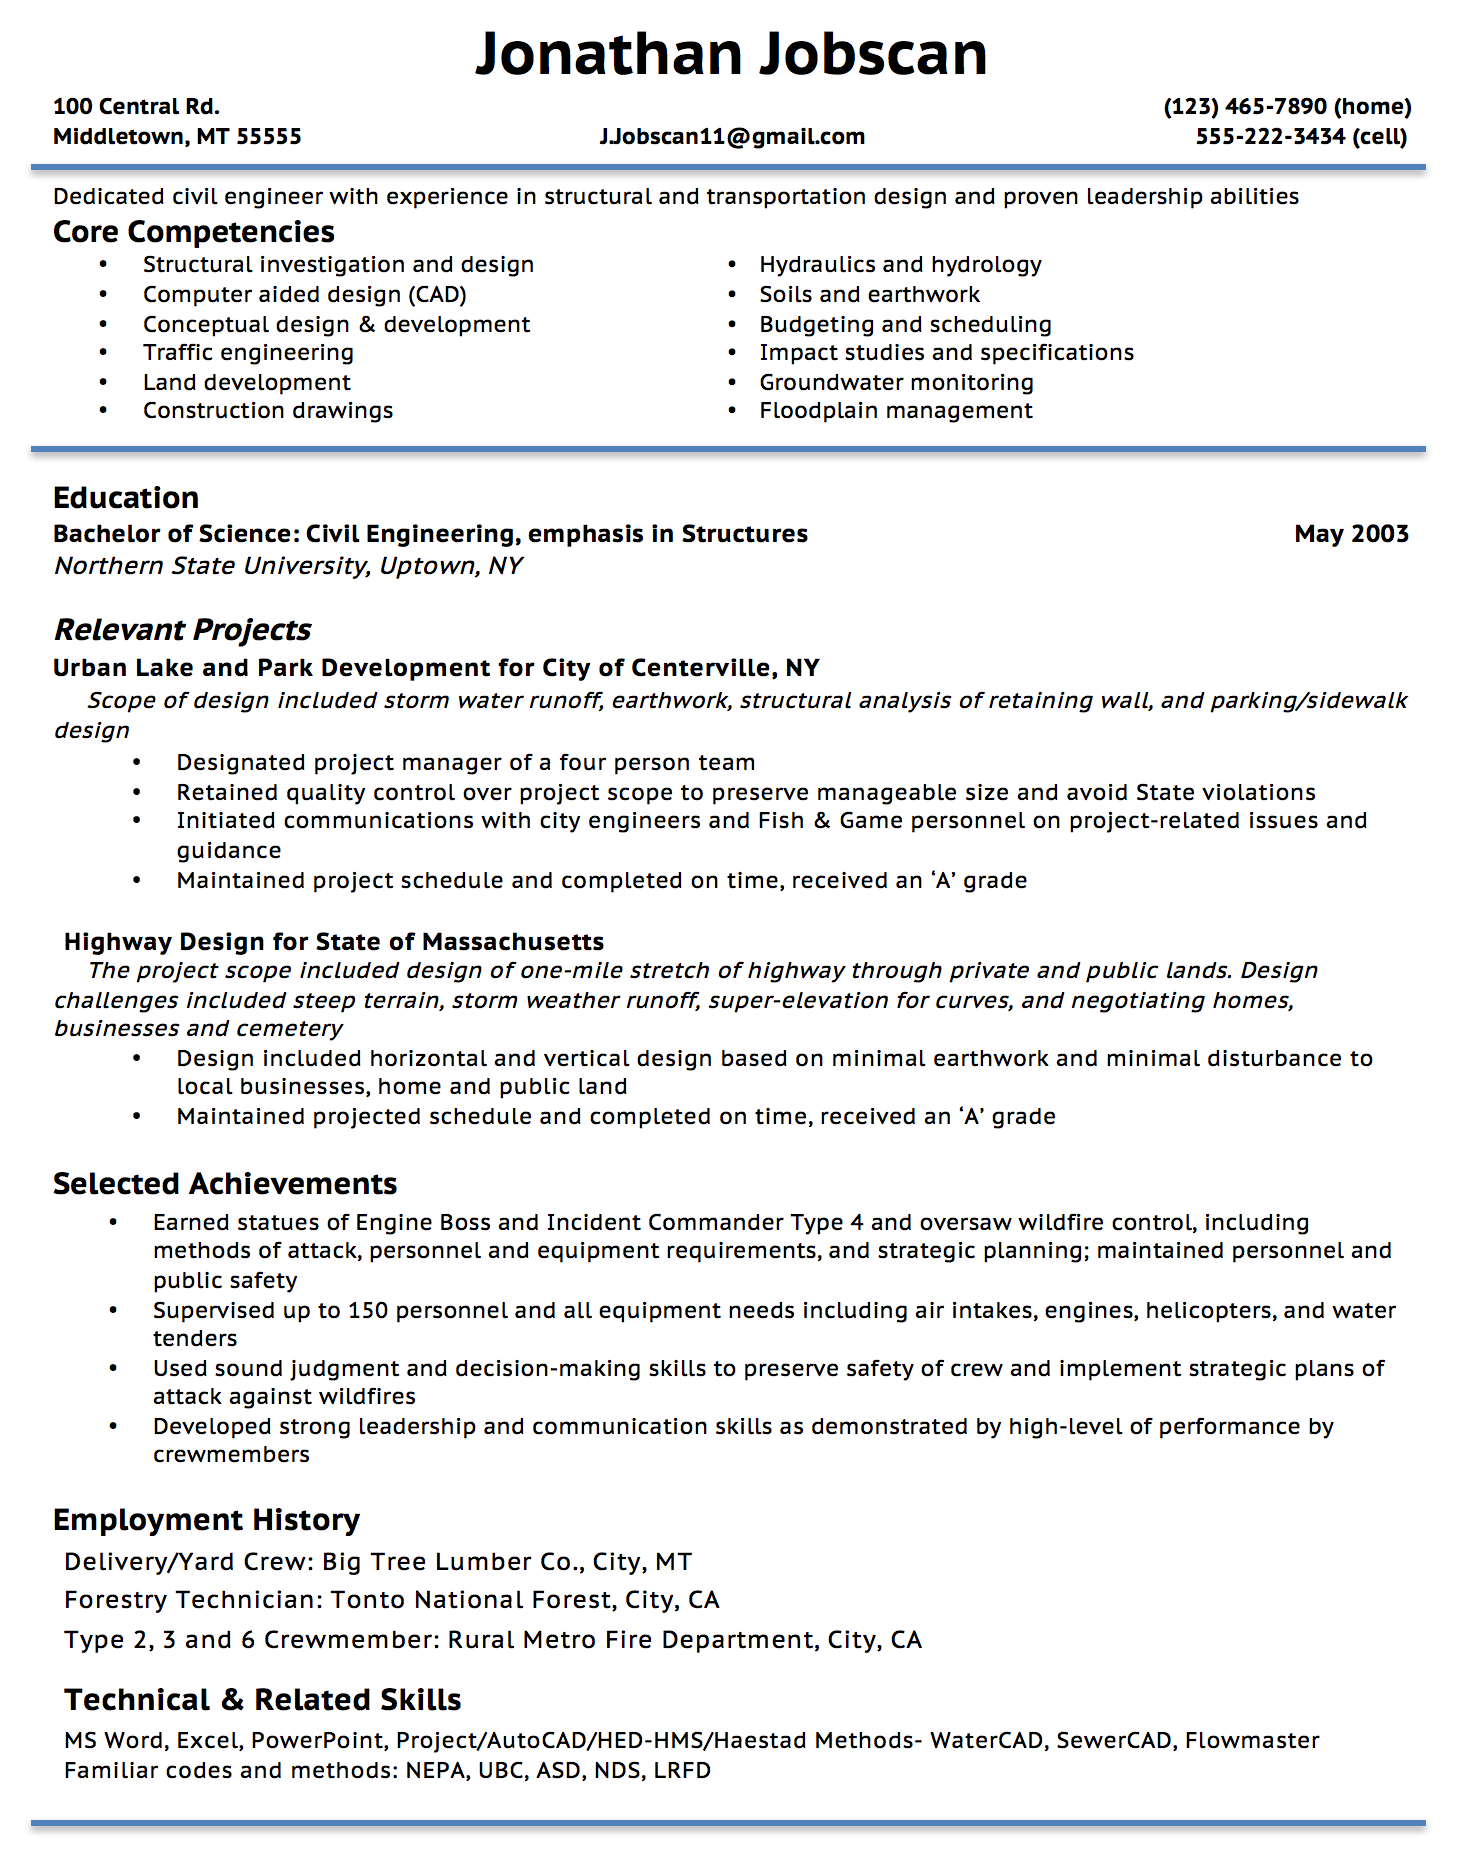 Opposenewapstandardsus  Gorgeous Resume Writing Guide  Jobscan With Gorgeous Example Of A Functional Resume Format With Comely Administrative Support Resume Also Cooks Resume In Addition Med Surg Resume And Professional Association Of Resume Writers And Career Coaches As Well As Strong Communication Skills Resume Examples Additionally Latex Resume Template Phd From Jobscanco With Opposenewapstandardsus  Gorgeous Resume Writing Guide  Jobscan With Comely Example Of A Functional Resume Format And Gorgeous Administrative Support Resume Also Cooks Resume In Addition Med Surg Resume From Jobscanco